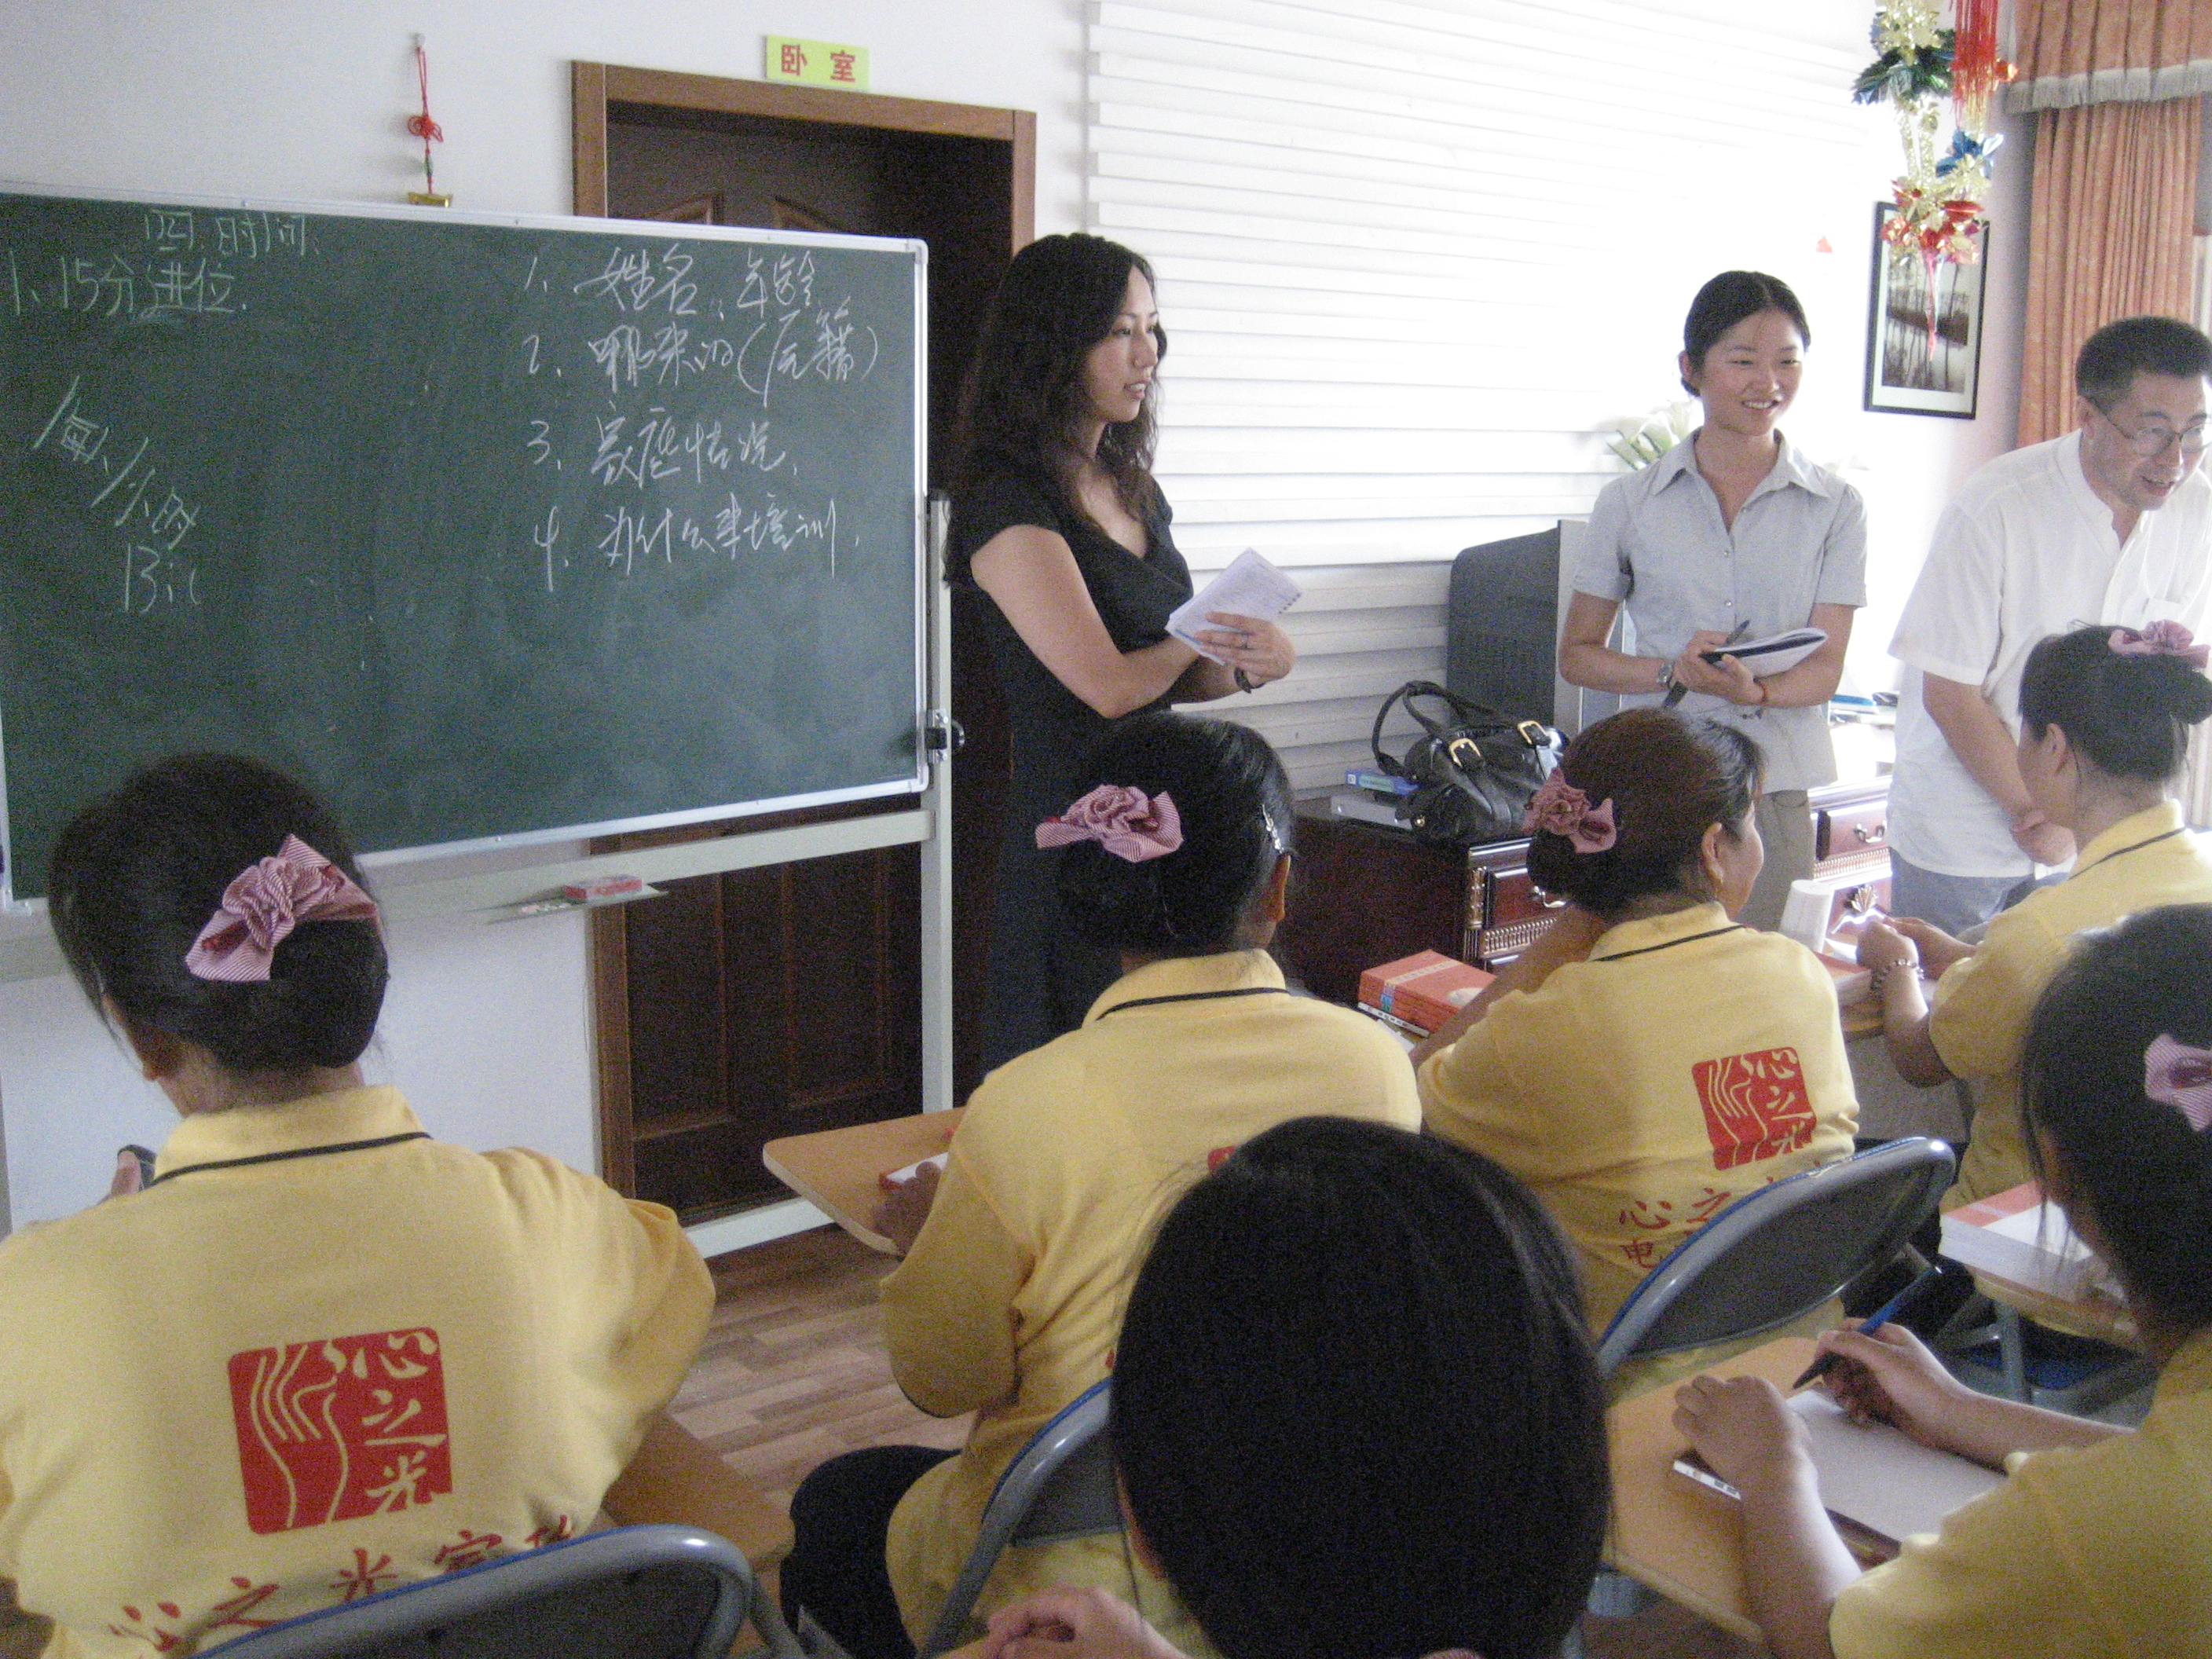 Meeting migrant women students at a free vocational training program during a site visit in Beijing on behalf of a donor.